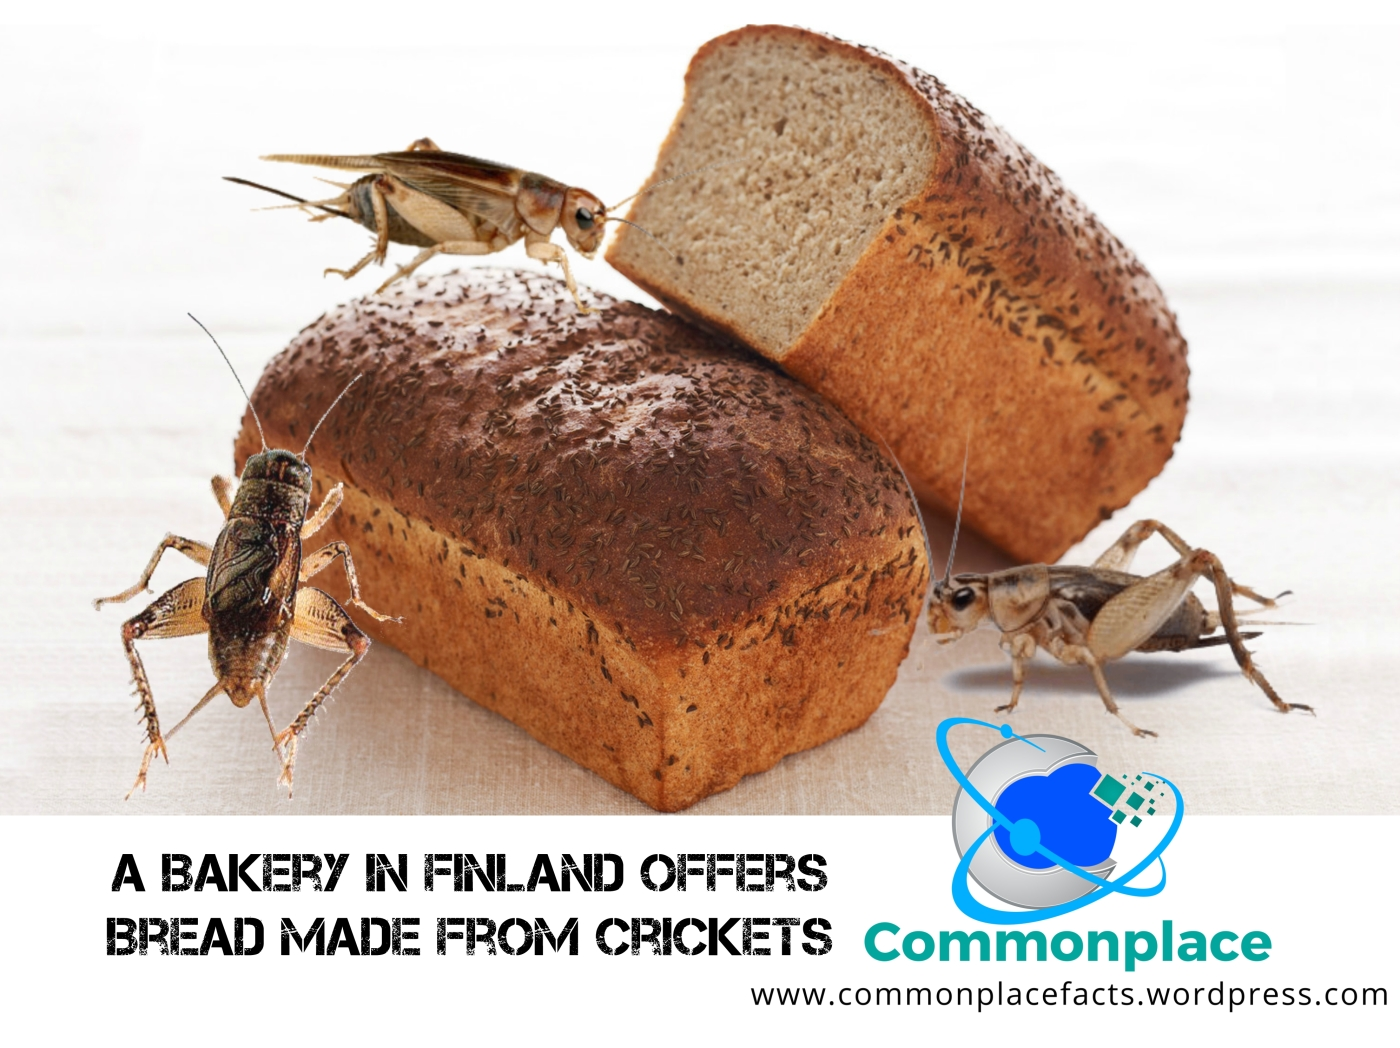 #crickets #food #strangefood #insects